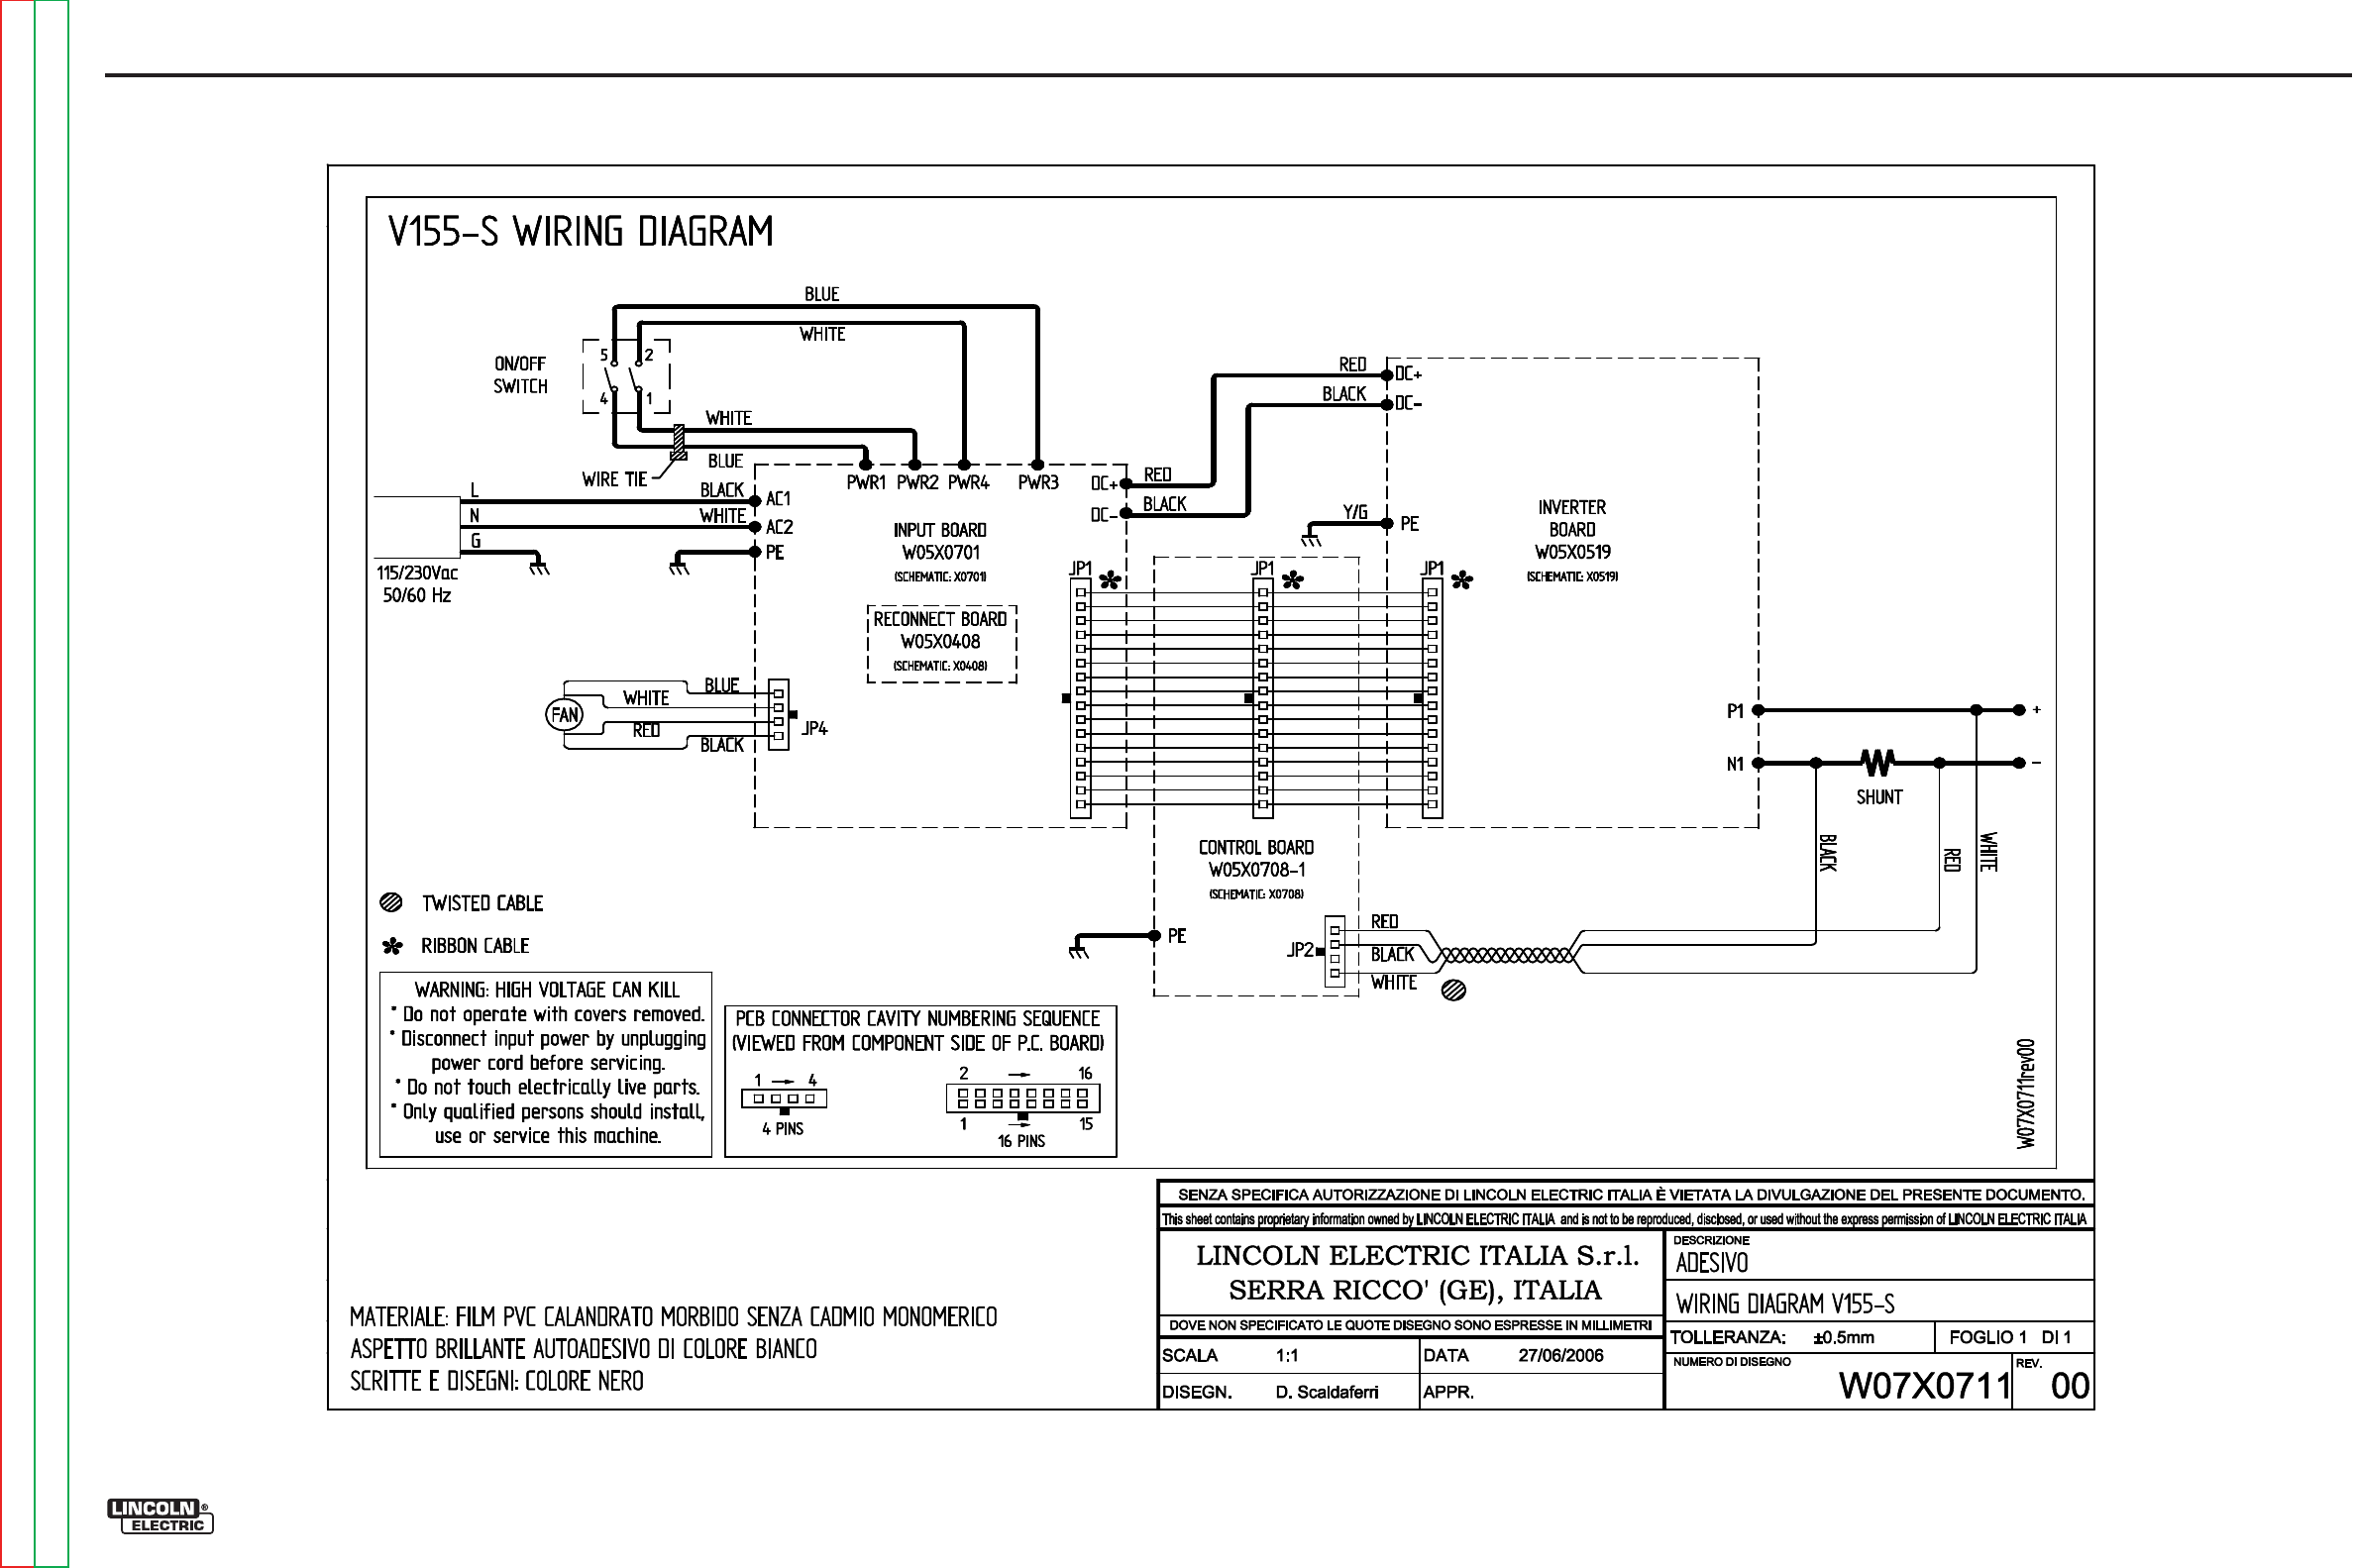 lincoln electric wiring diagram lincoln printable wiring page 68 of lincoln electric portable generator v155 s user guide source